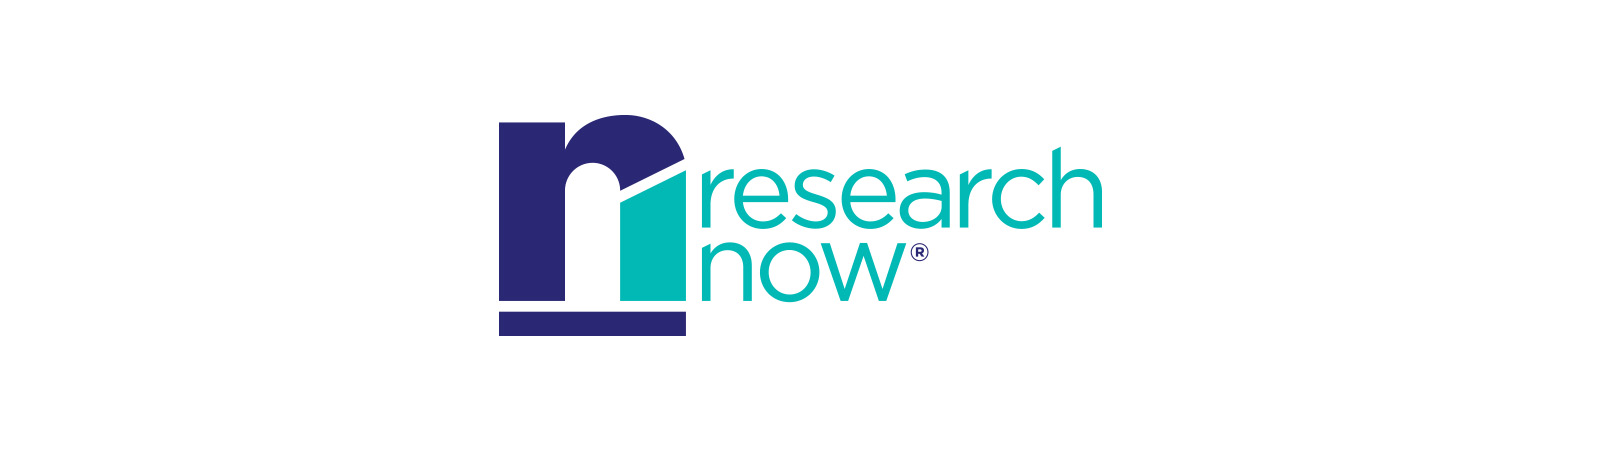 Research Now Group, Inc. Logo Image